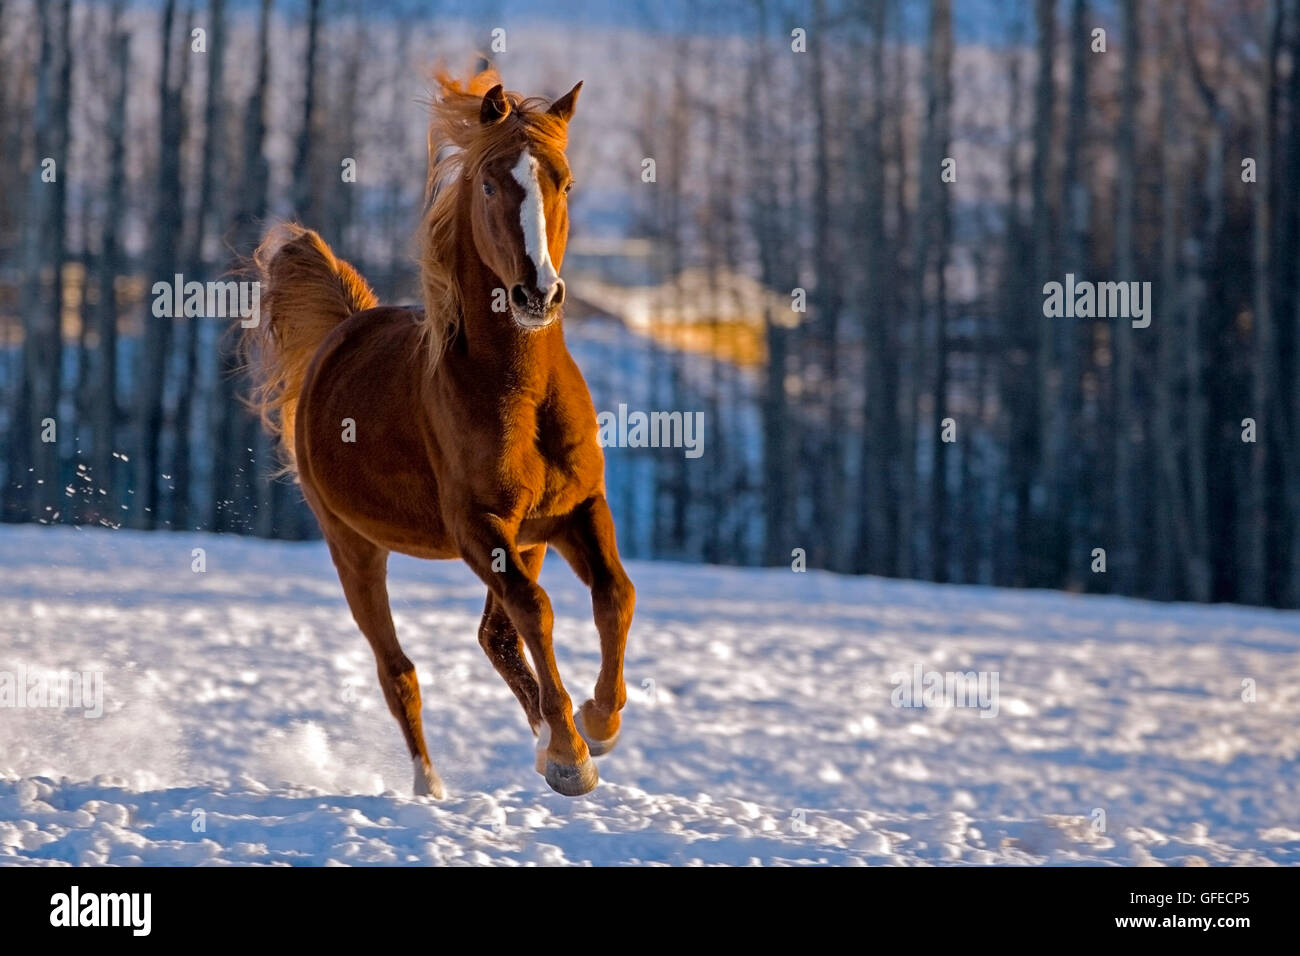 Arabian chestnut Stallion galloping in a snowy field in late winter. - Stock Image